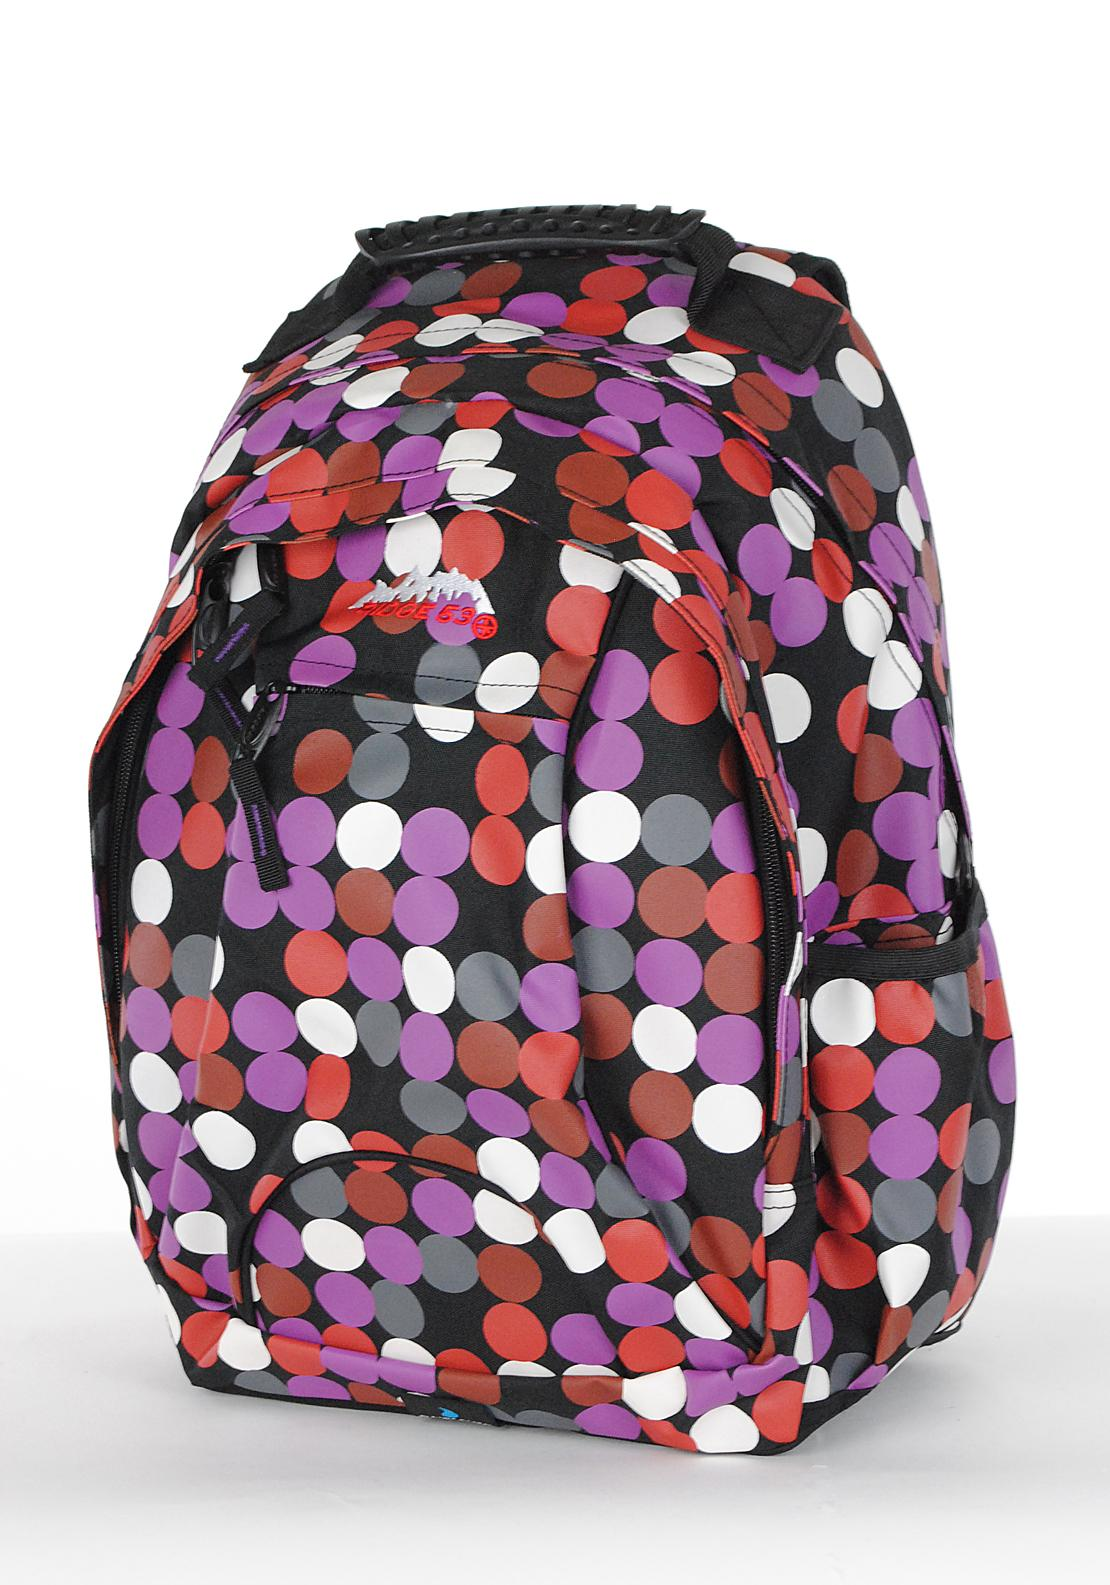 Ridge 53 Abbey Suesey Dots Backpack School Bag, Multi